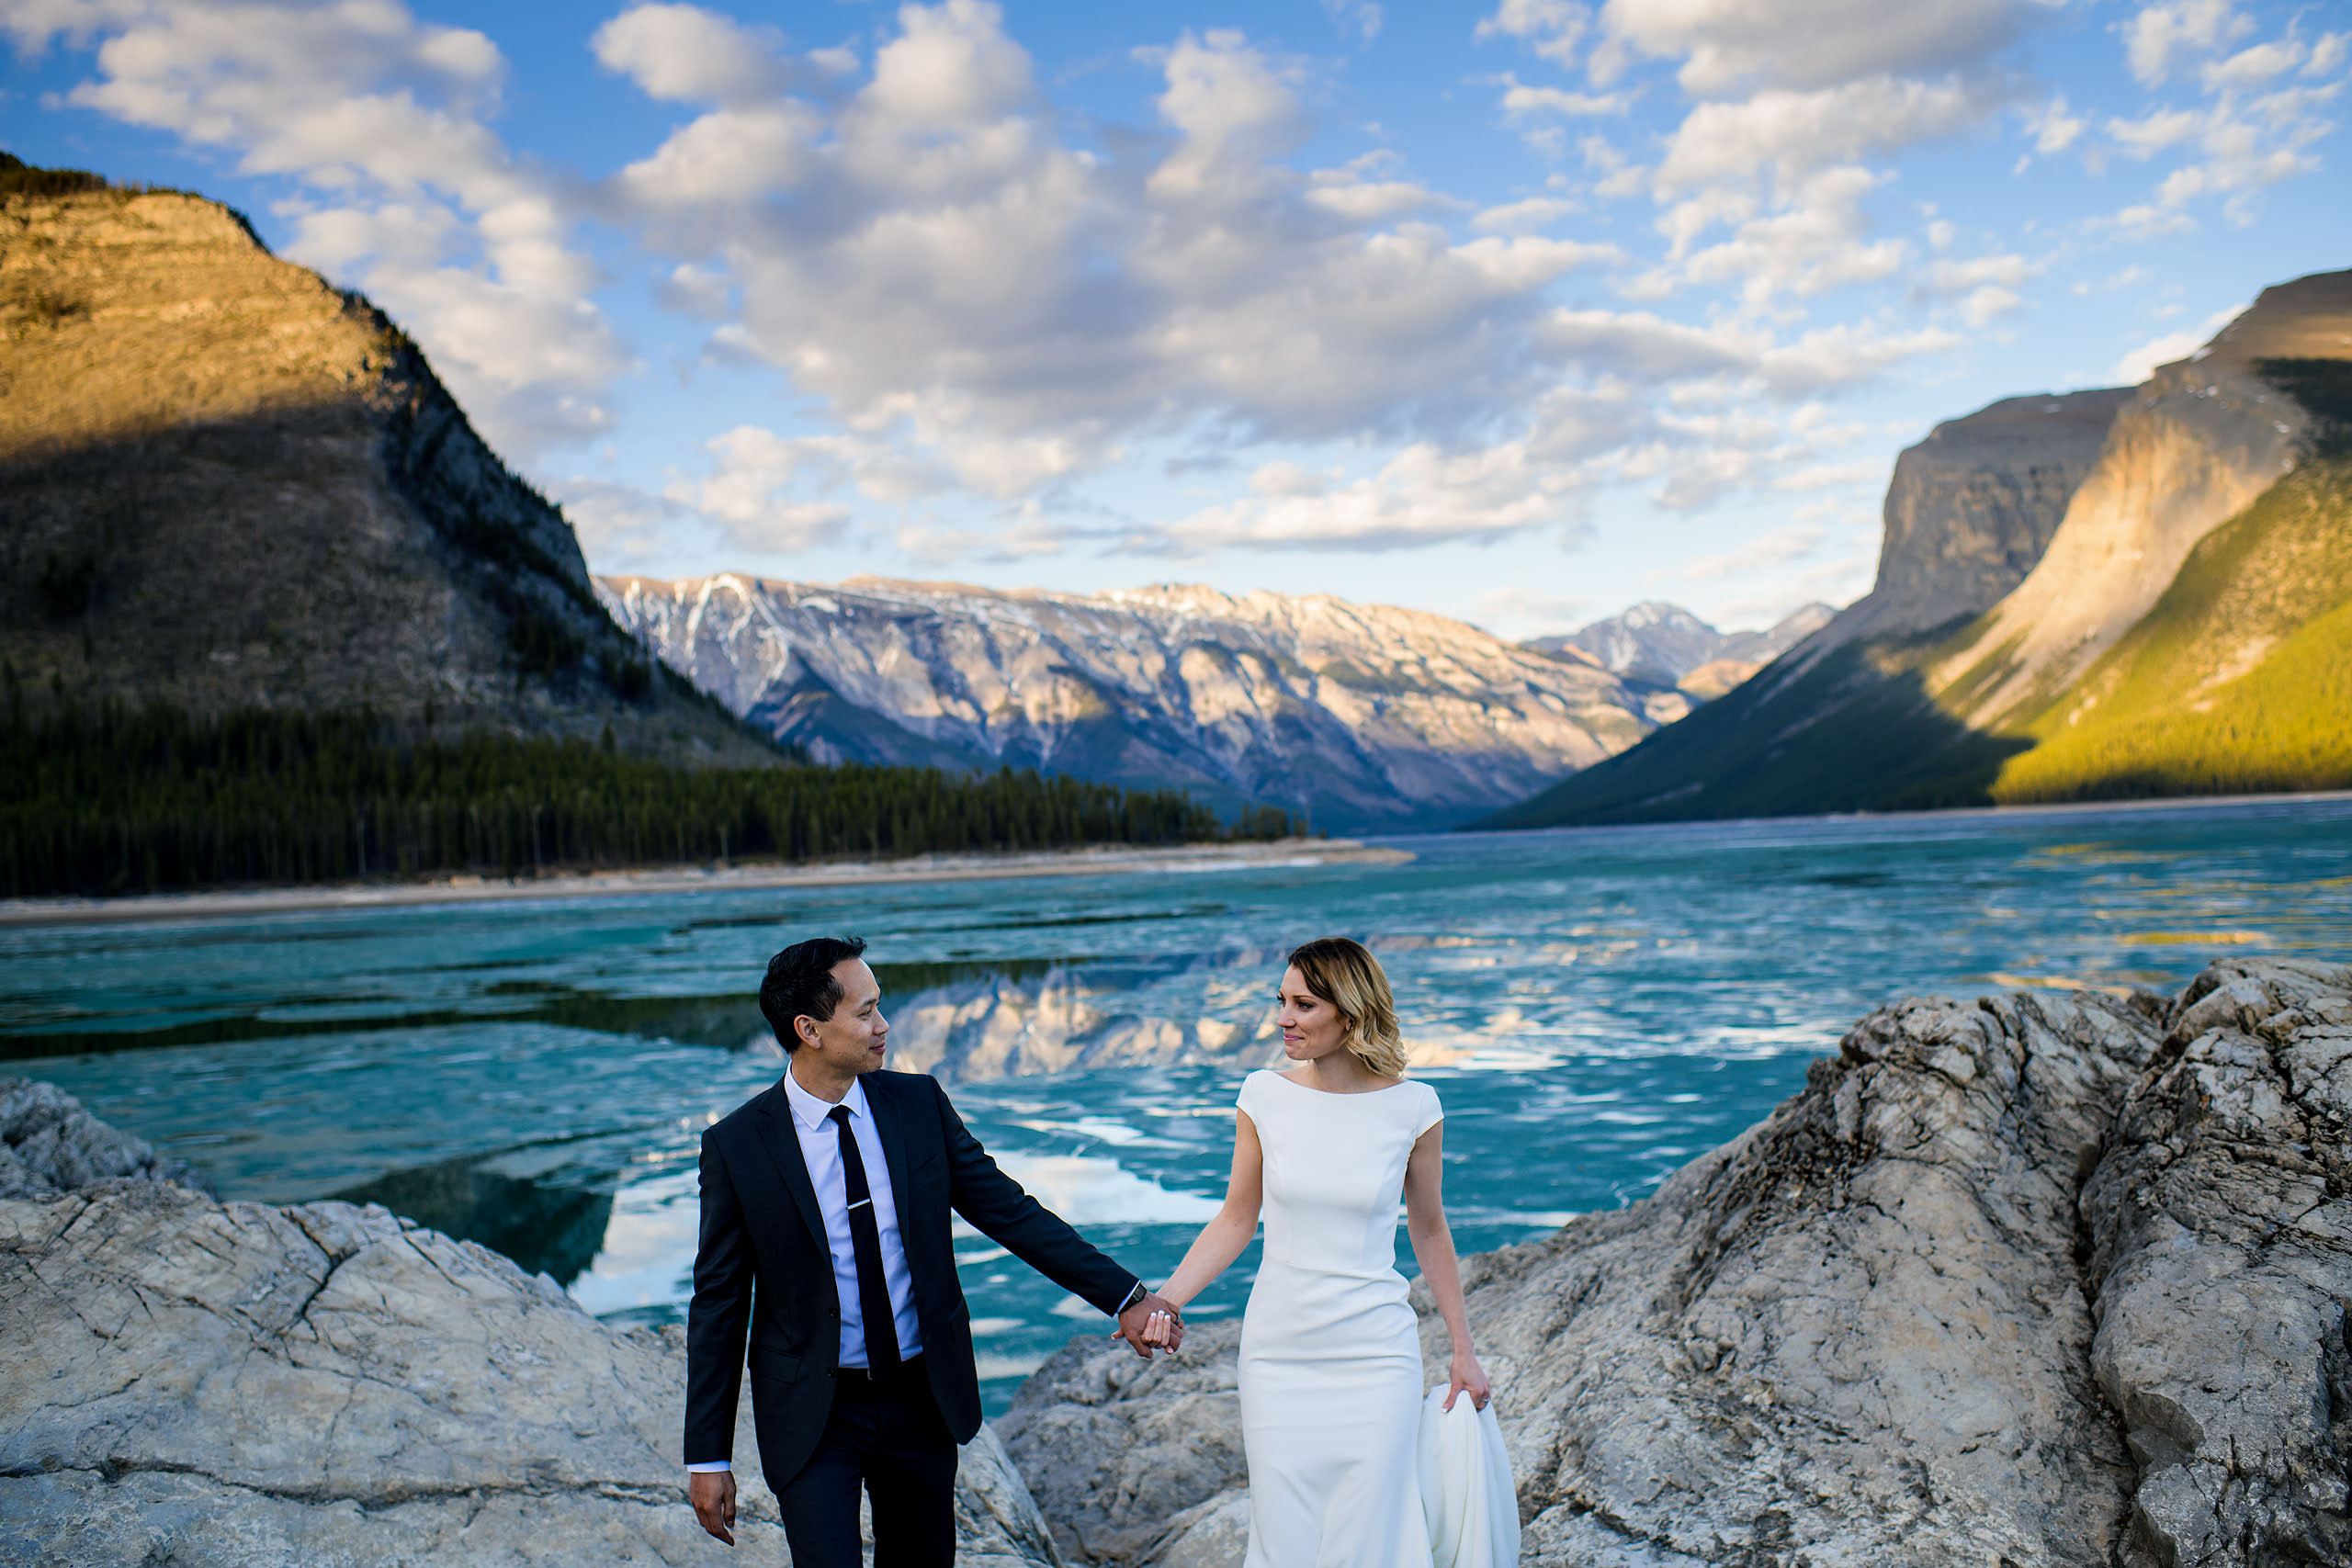 a groom and bride walking up from a lake surrounded by mountains by top Banff photographer sean leblanc